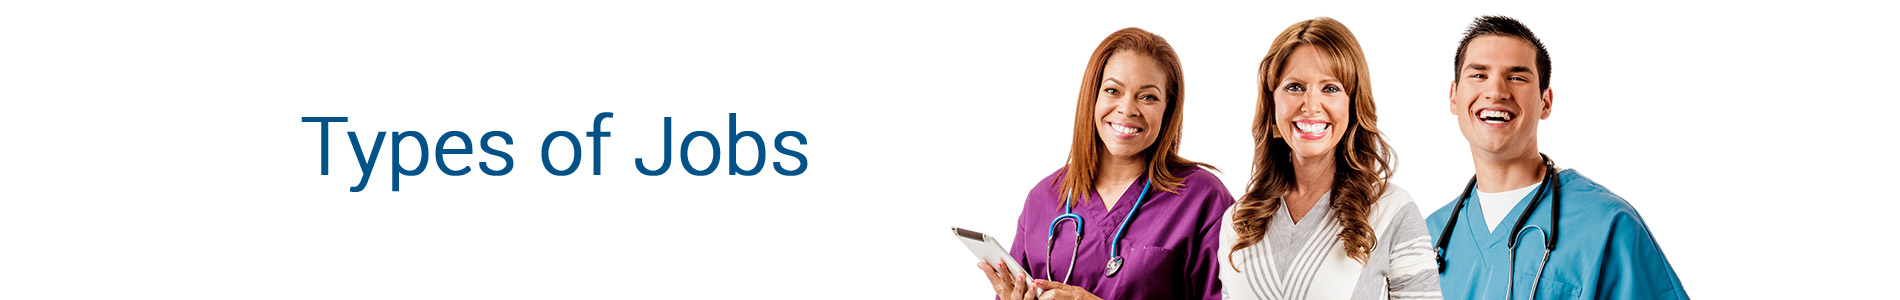 Healthcare - Types of Jobs page banner